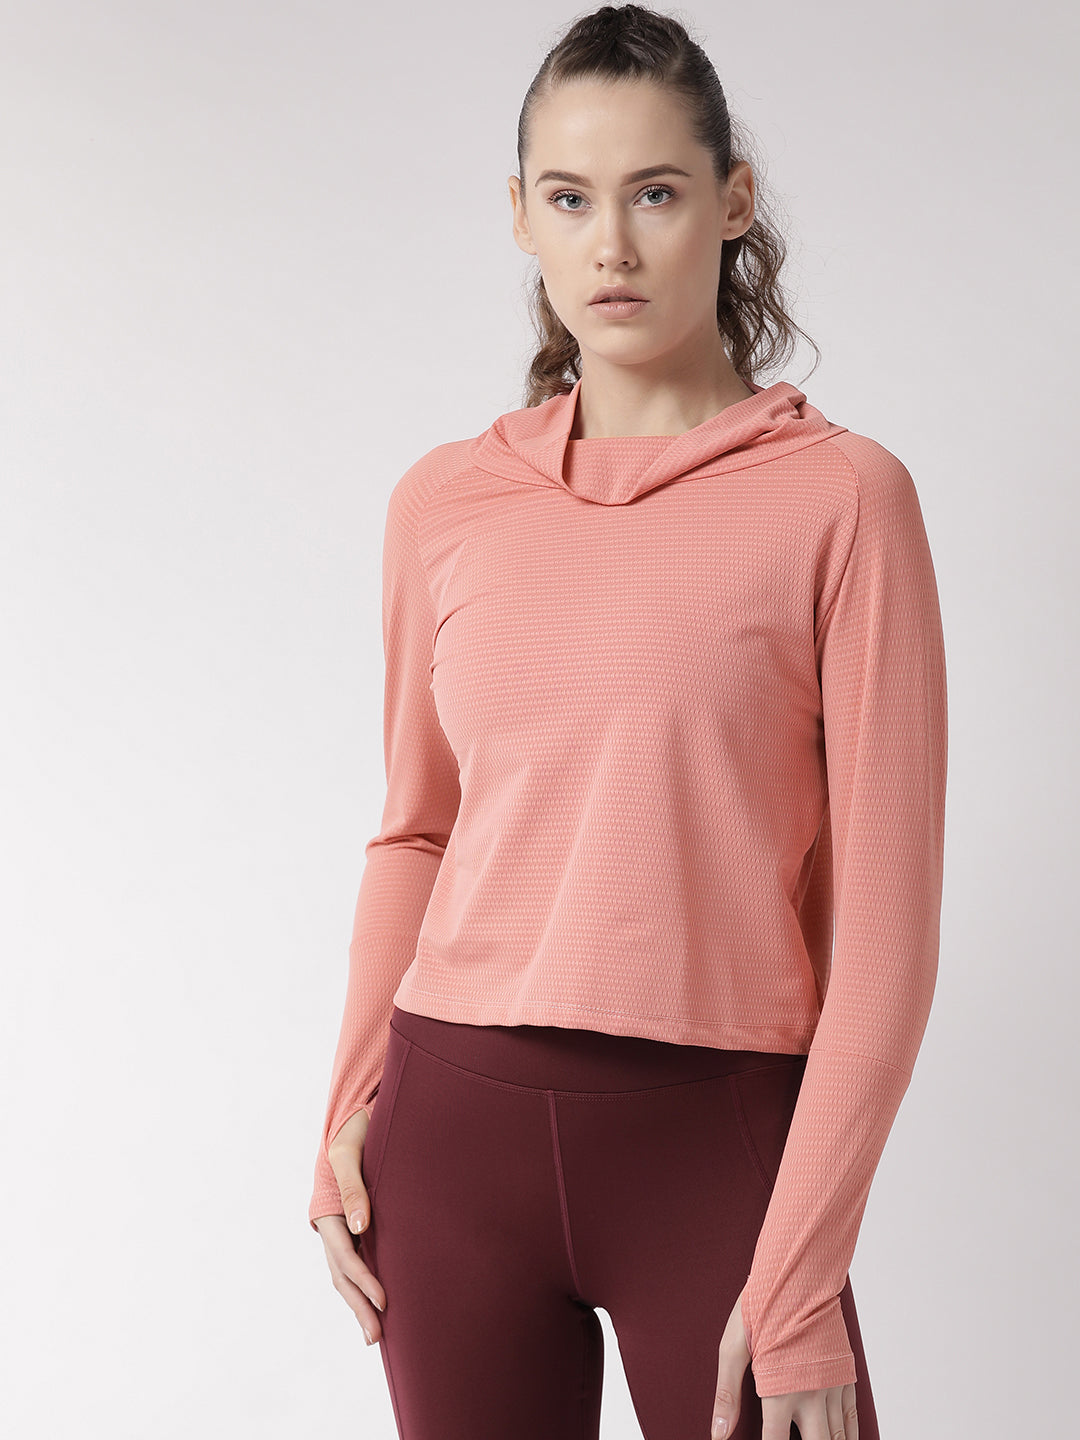 Fitkin Women Pink Self Design Top